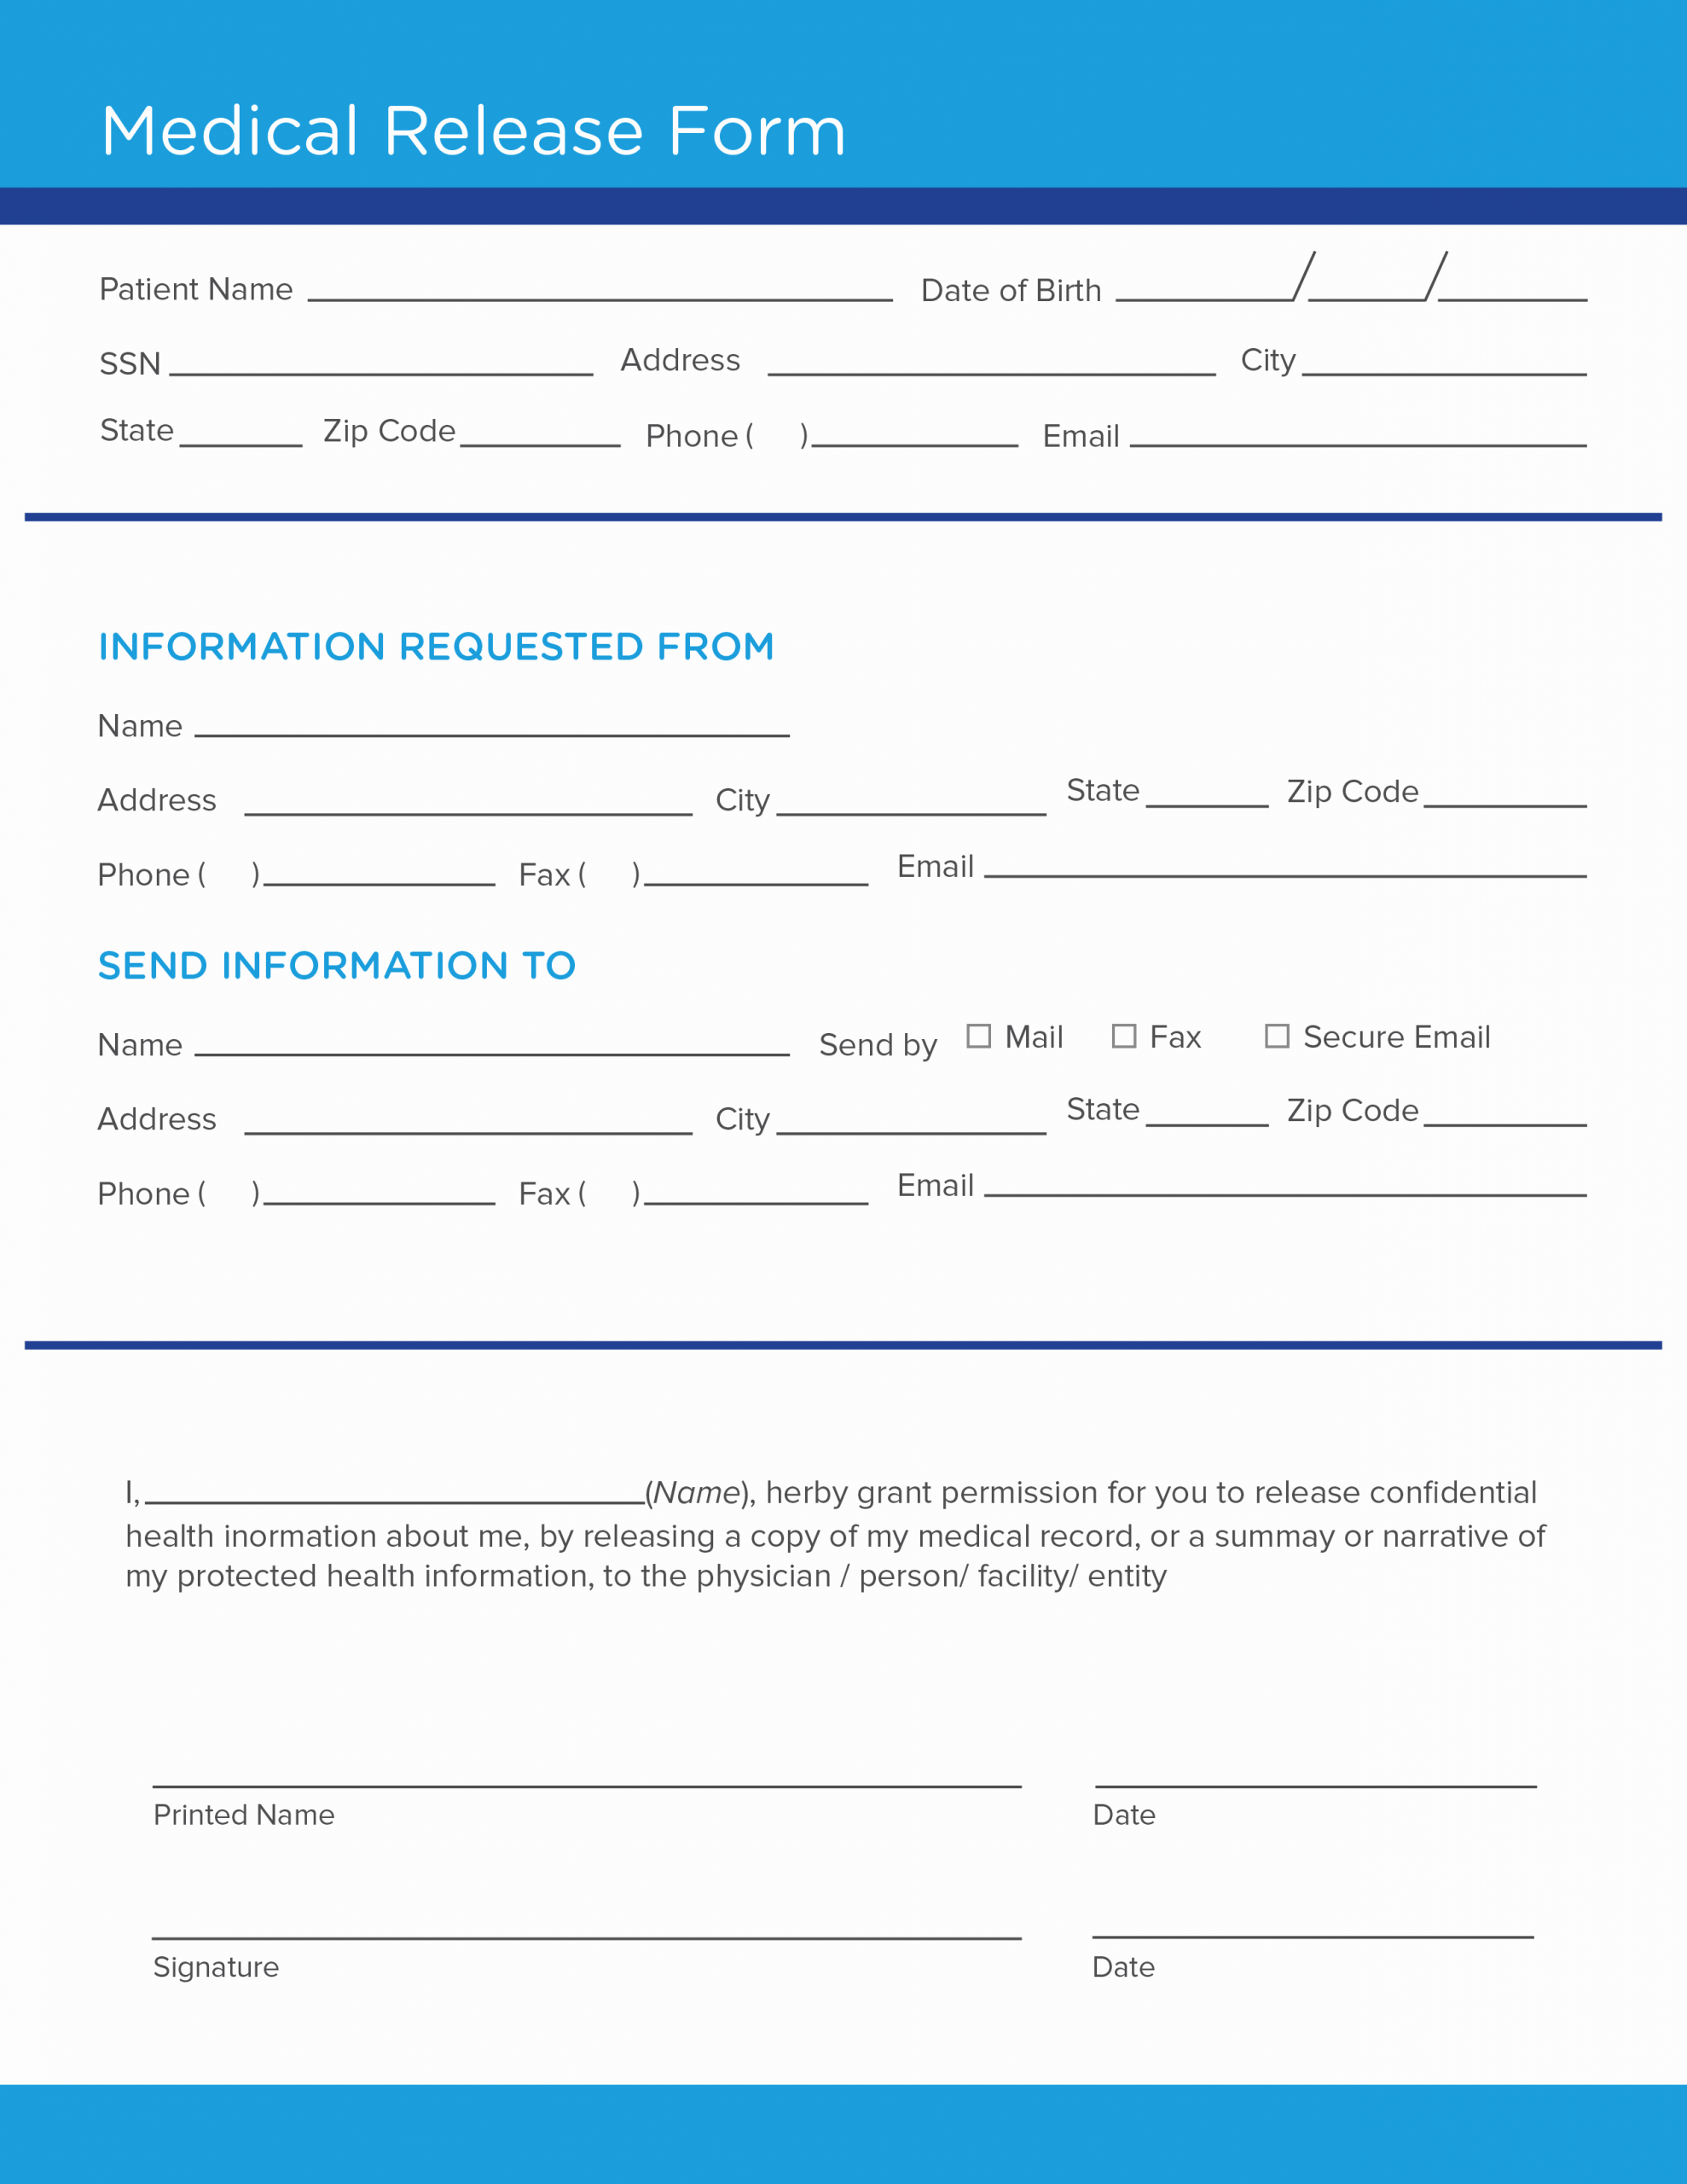 Template for Medical Release form Best Of Free Medical Release form Template